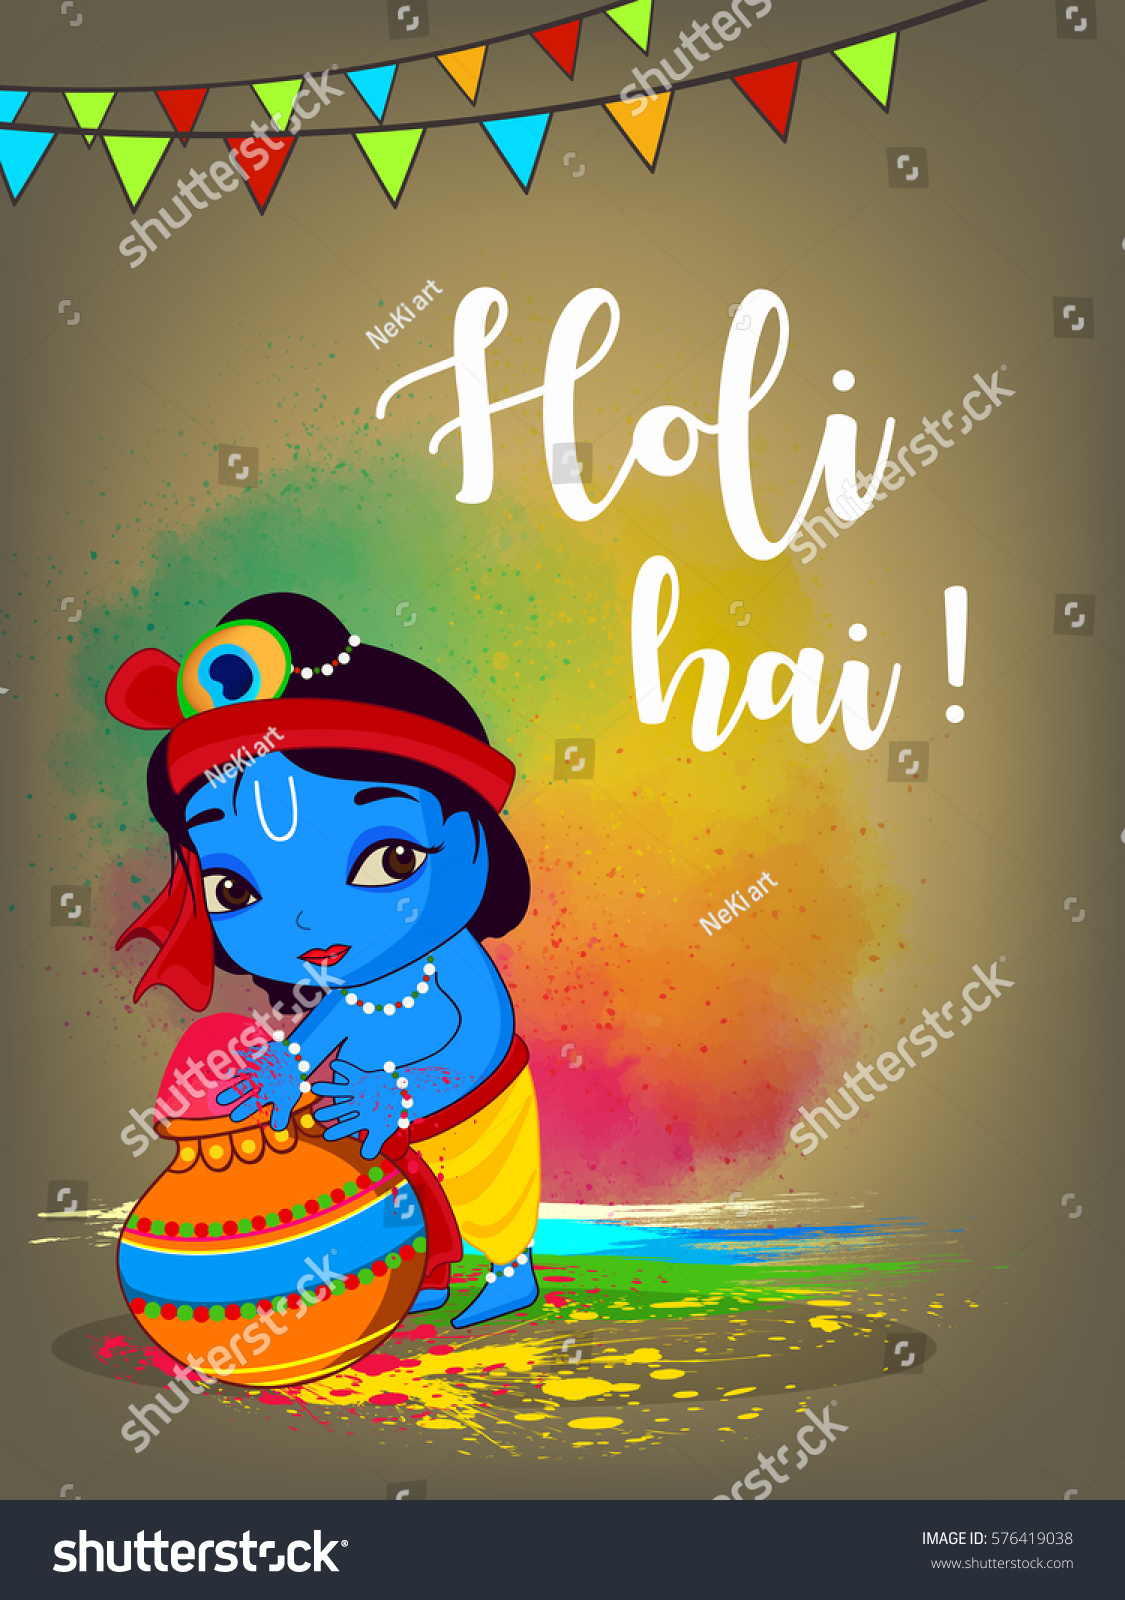 Happy Holi Vector Illustration Wallpaper Design Stock Vector Royalty Free 576419038